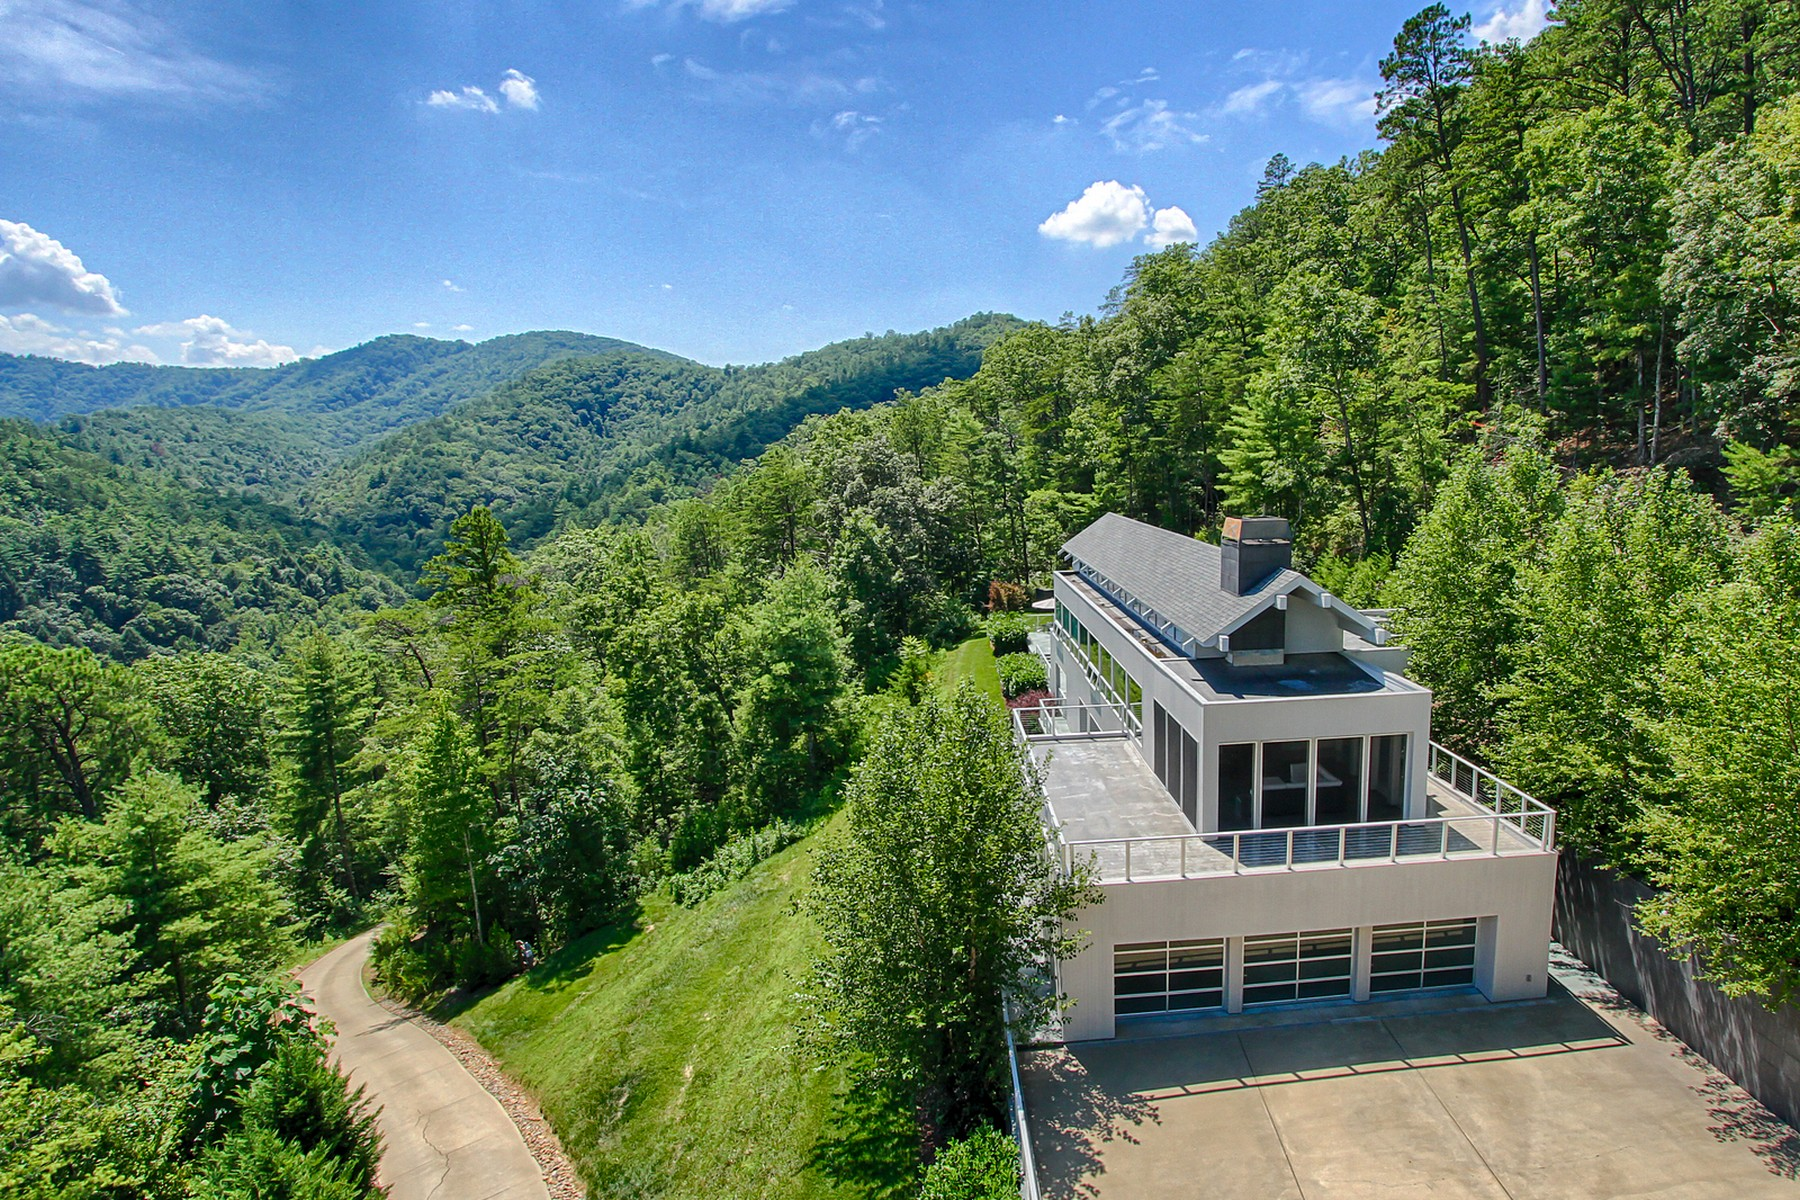 Villa per Vendita alle ore Mountain Views with the Contemporary Retreat! 127 Sunshine Way Townsend, Tennessee 37882 Stati Uniti